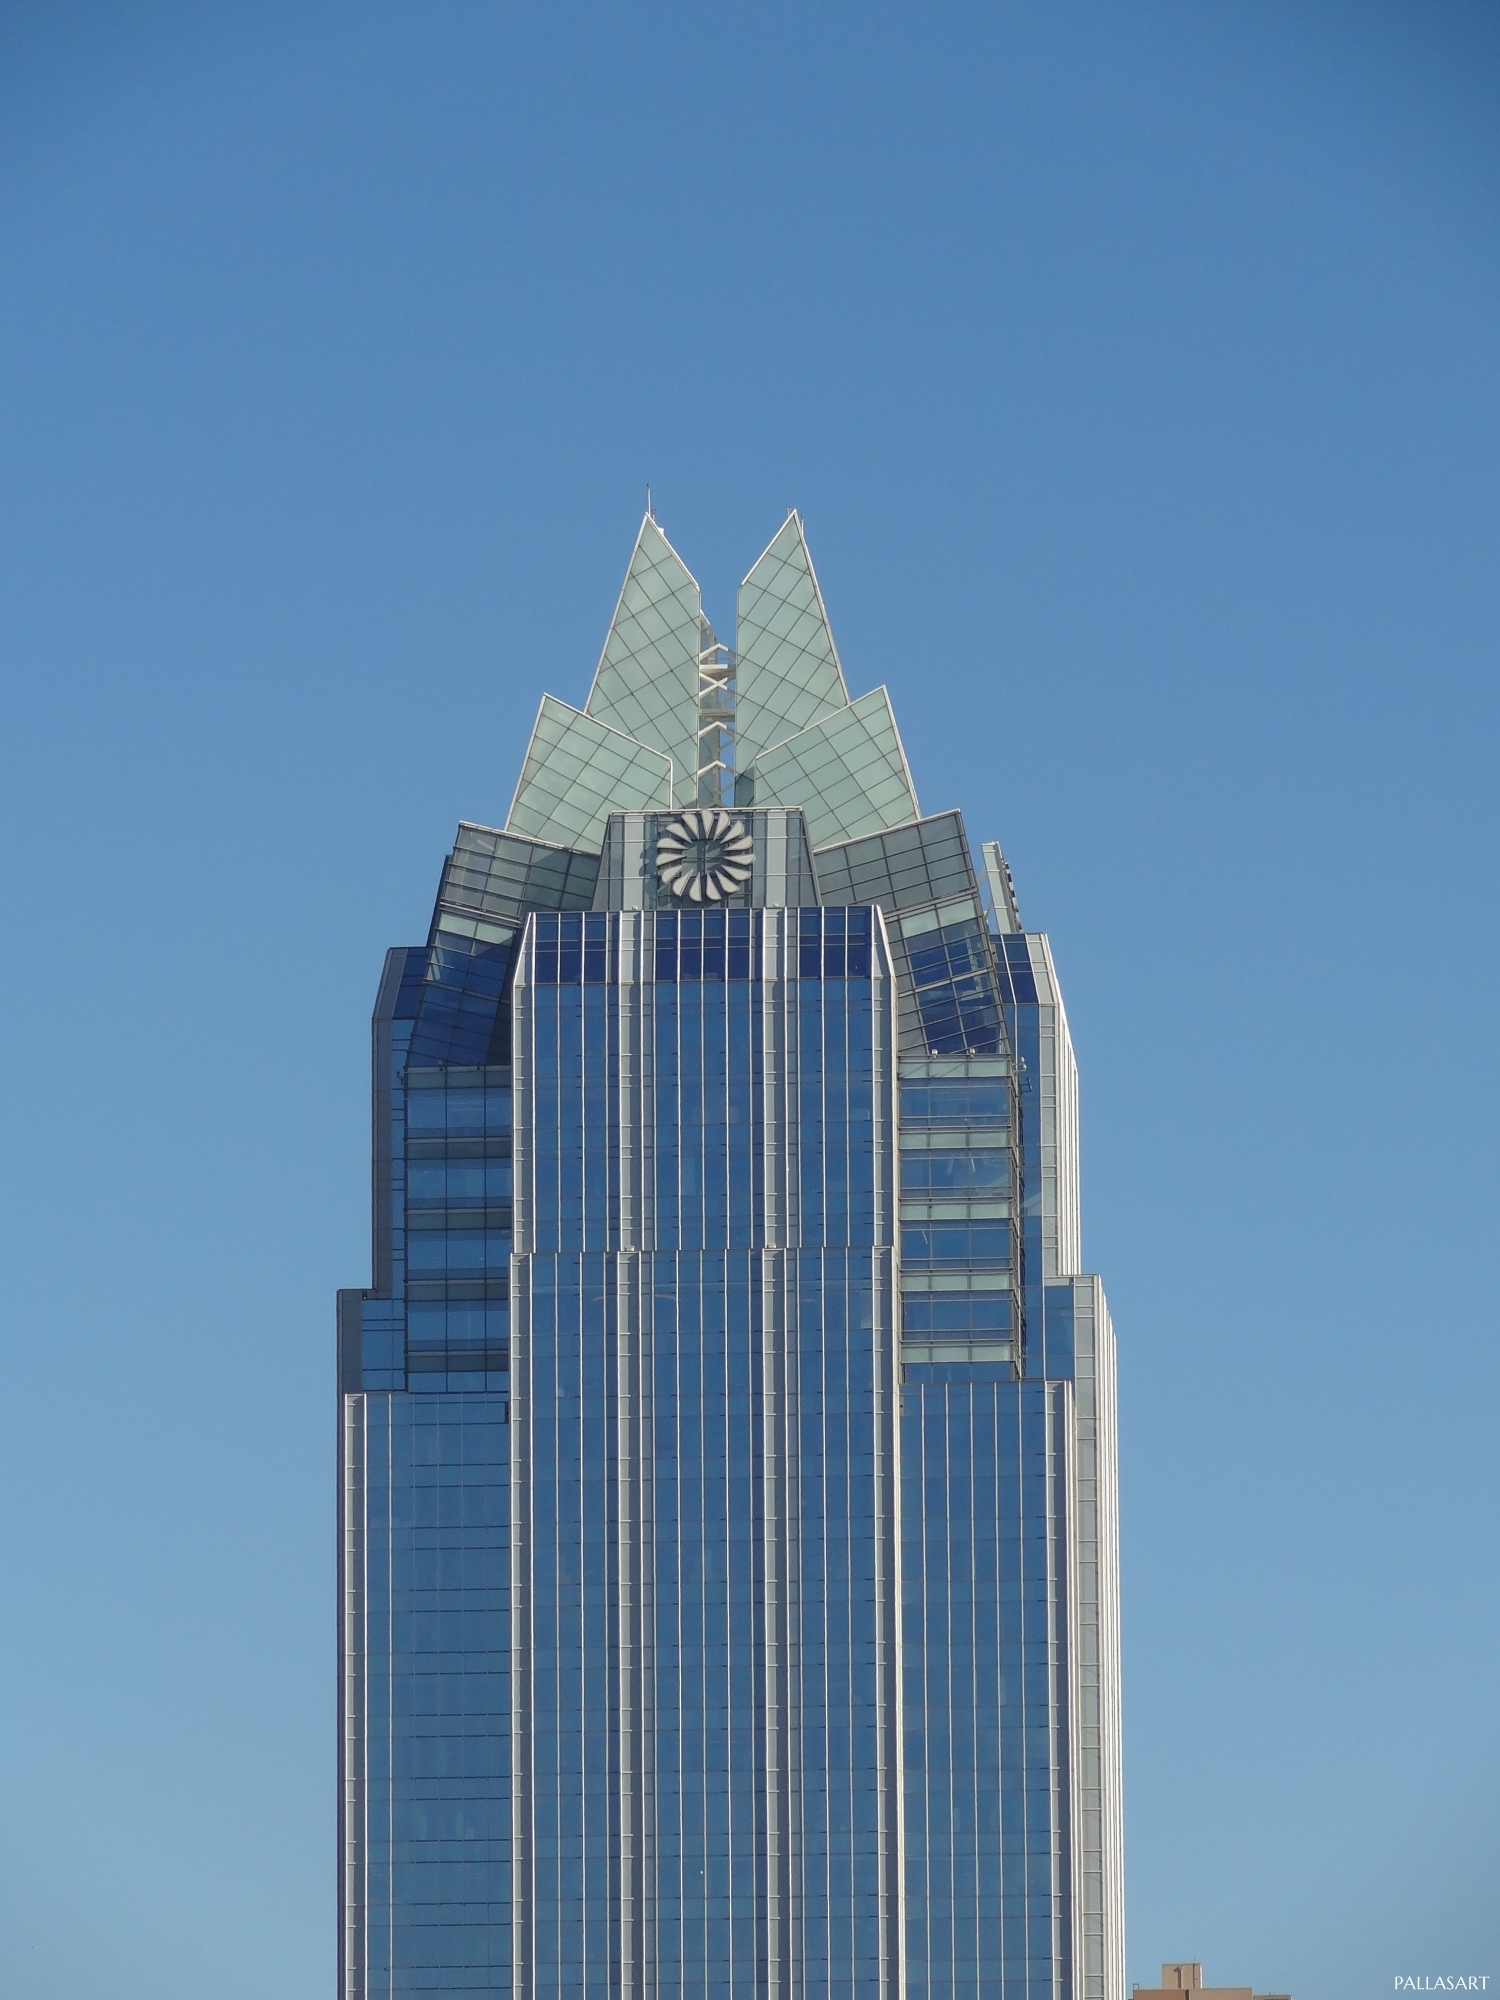 Full view of Frost Bank Tower in Austin, TX